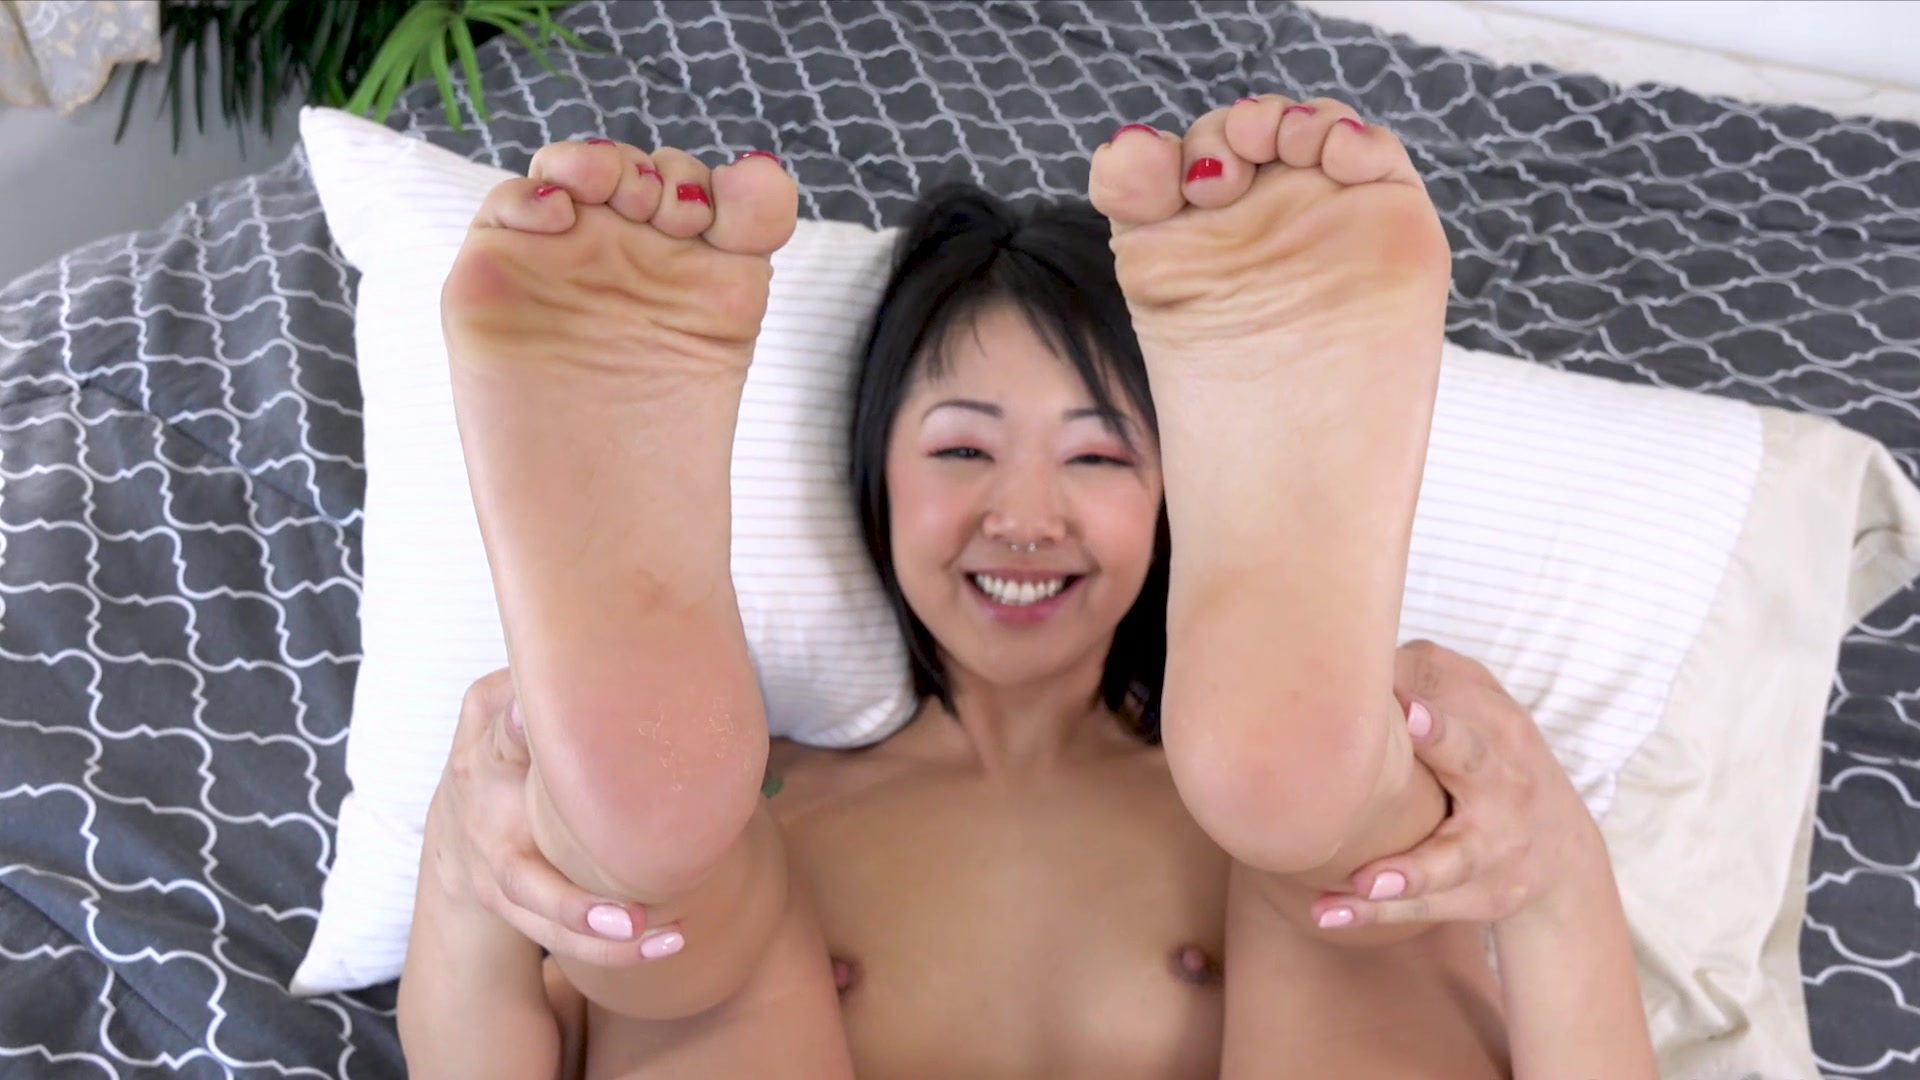 Nari park fingers her tight pussy 2